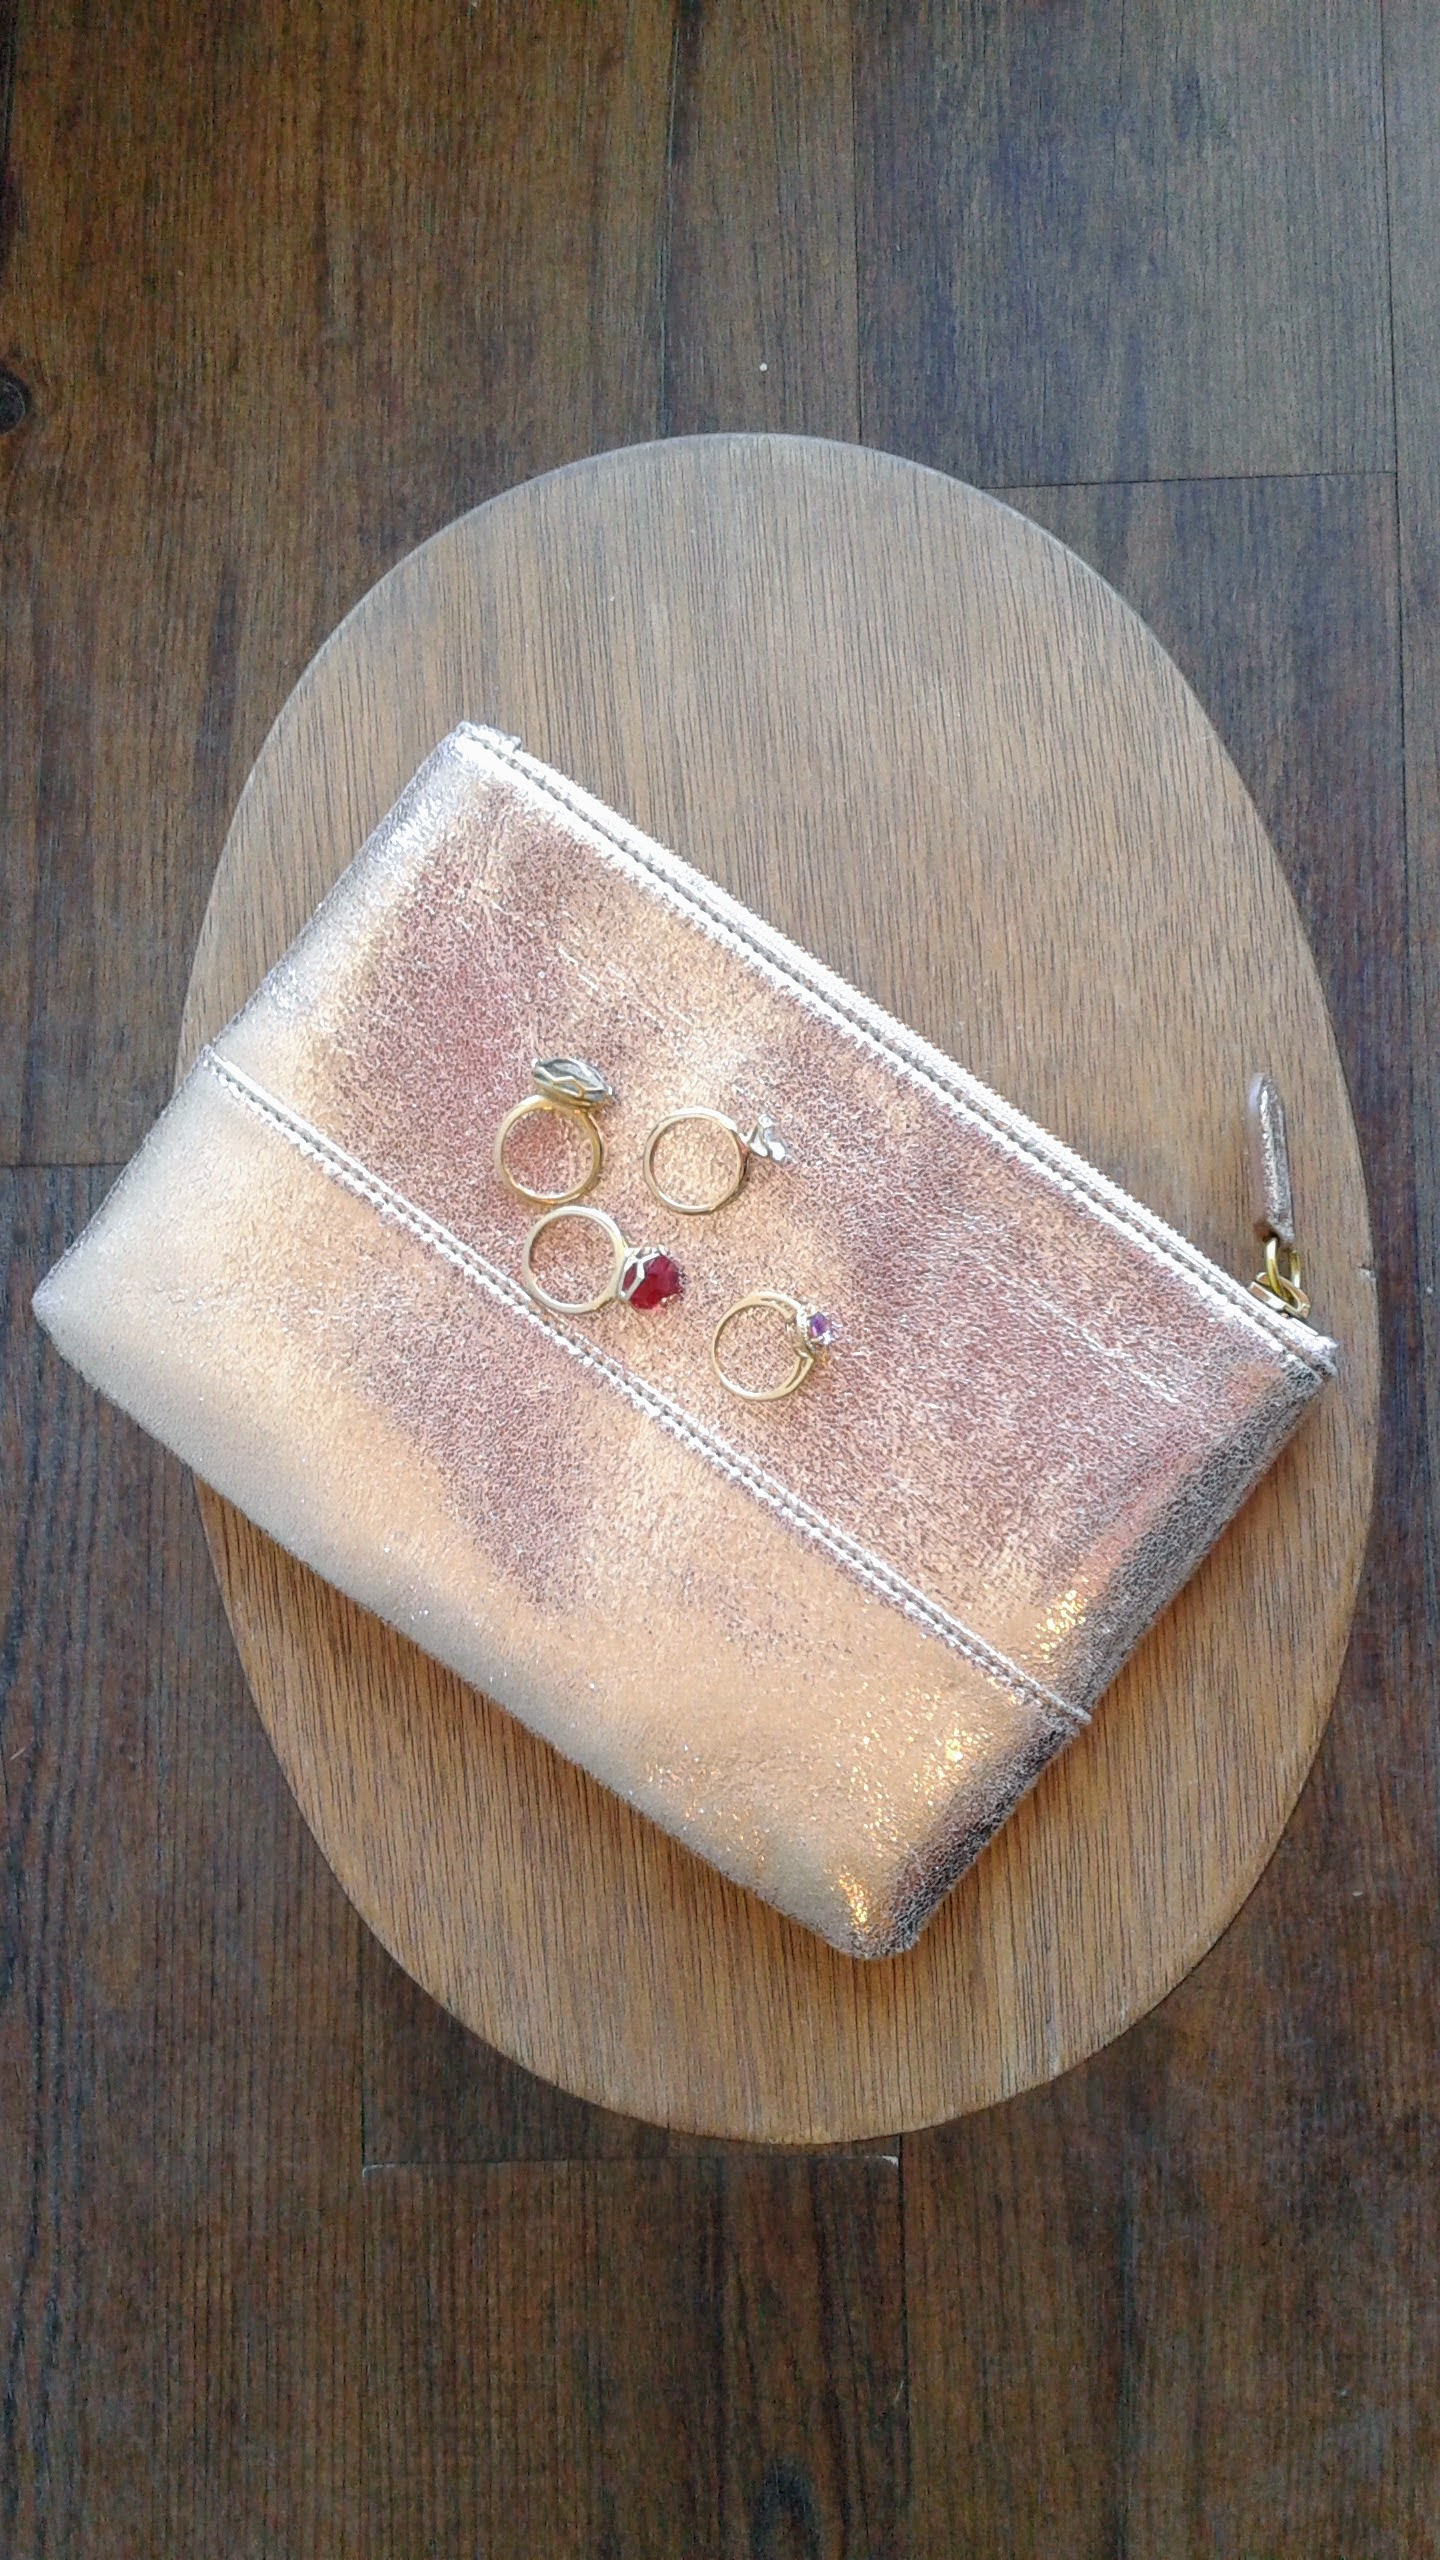 J Crew pouch, $22; Purple ring, $14; Solitaire ring, $14; Red ring, $16